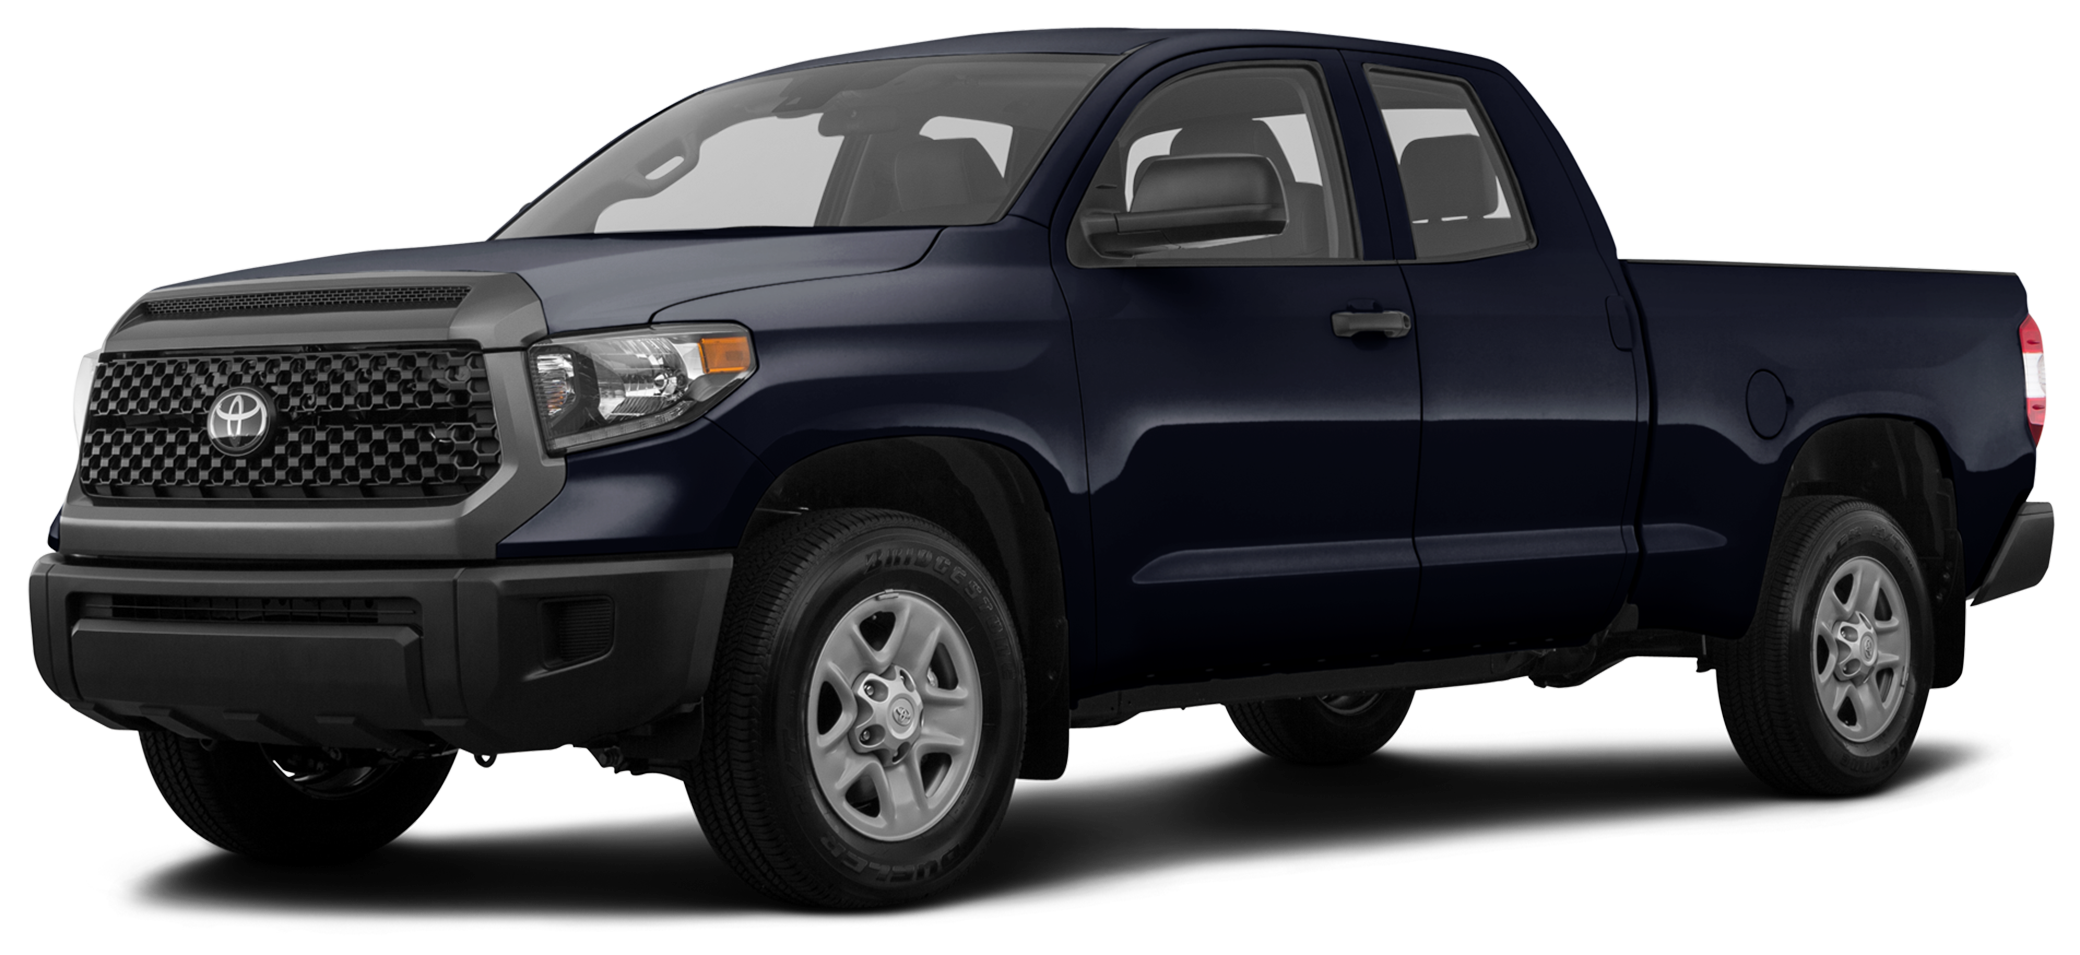 Review & Compare the 2019 Toyota Tundra at Larry H. Miller